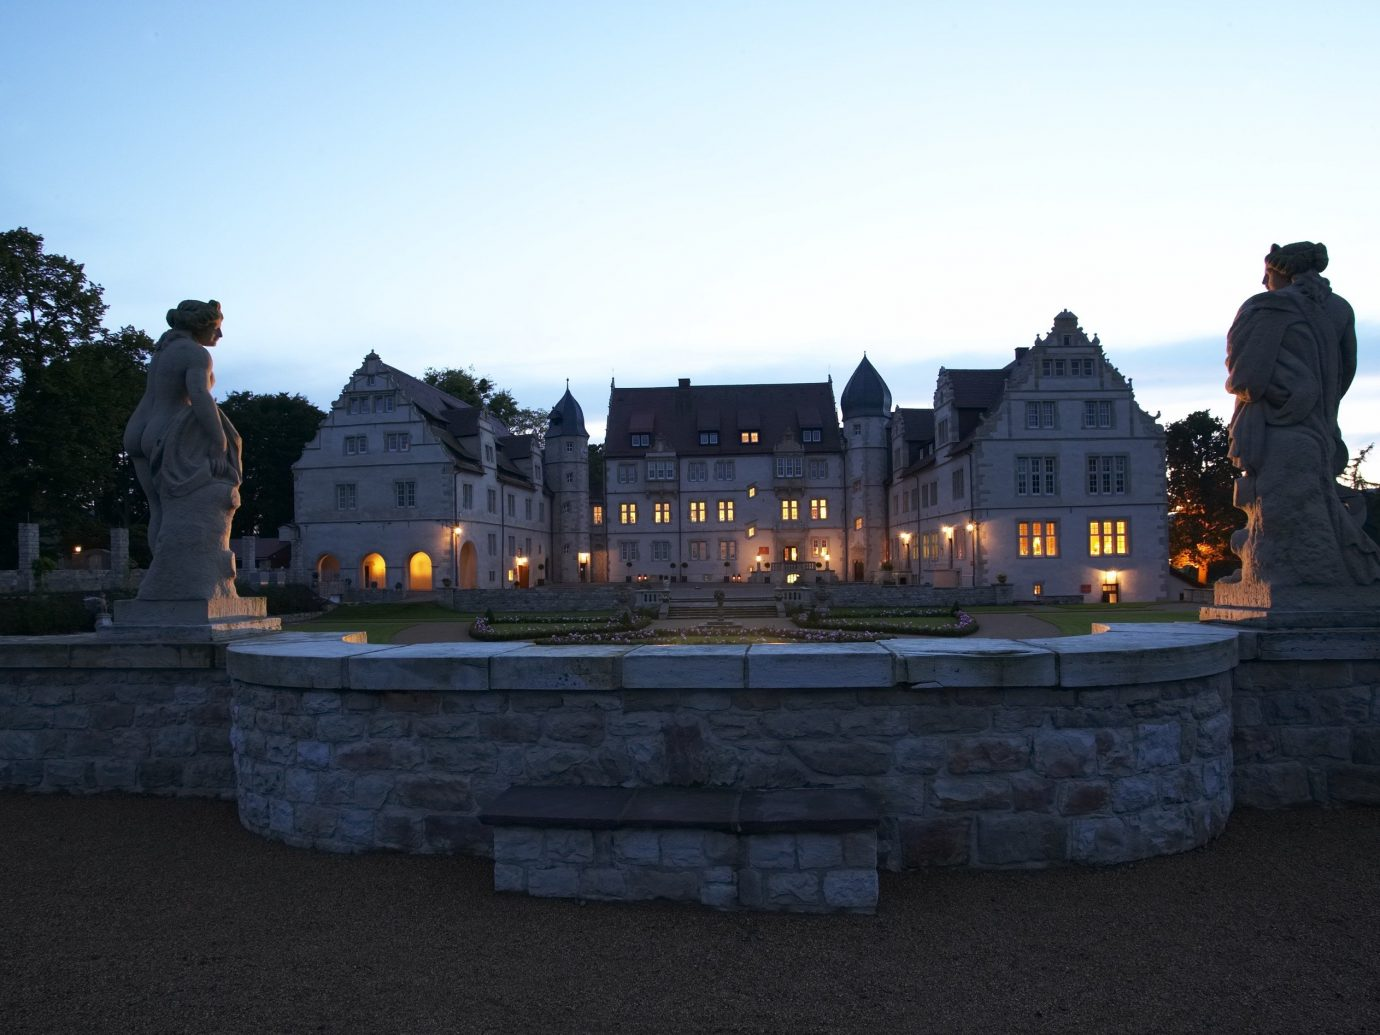 Hotels Landmarks Luxury Travel sky outdoor château water evening reflection wall building morning estate castle tourist attraction mansion tree historic site tours tourism dusk landscape stately home